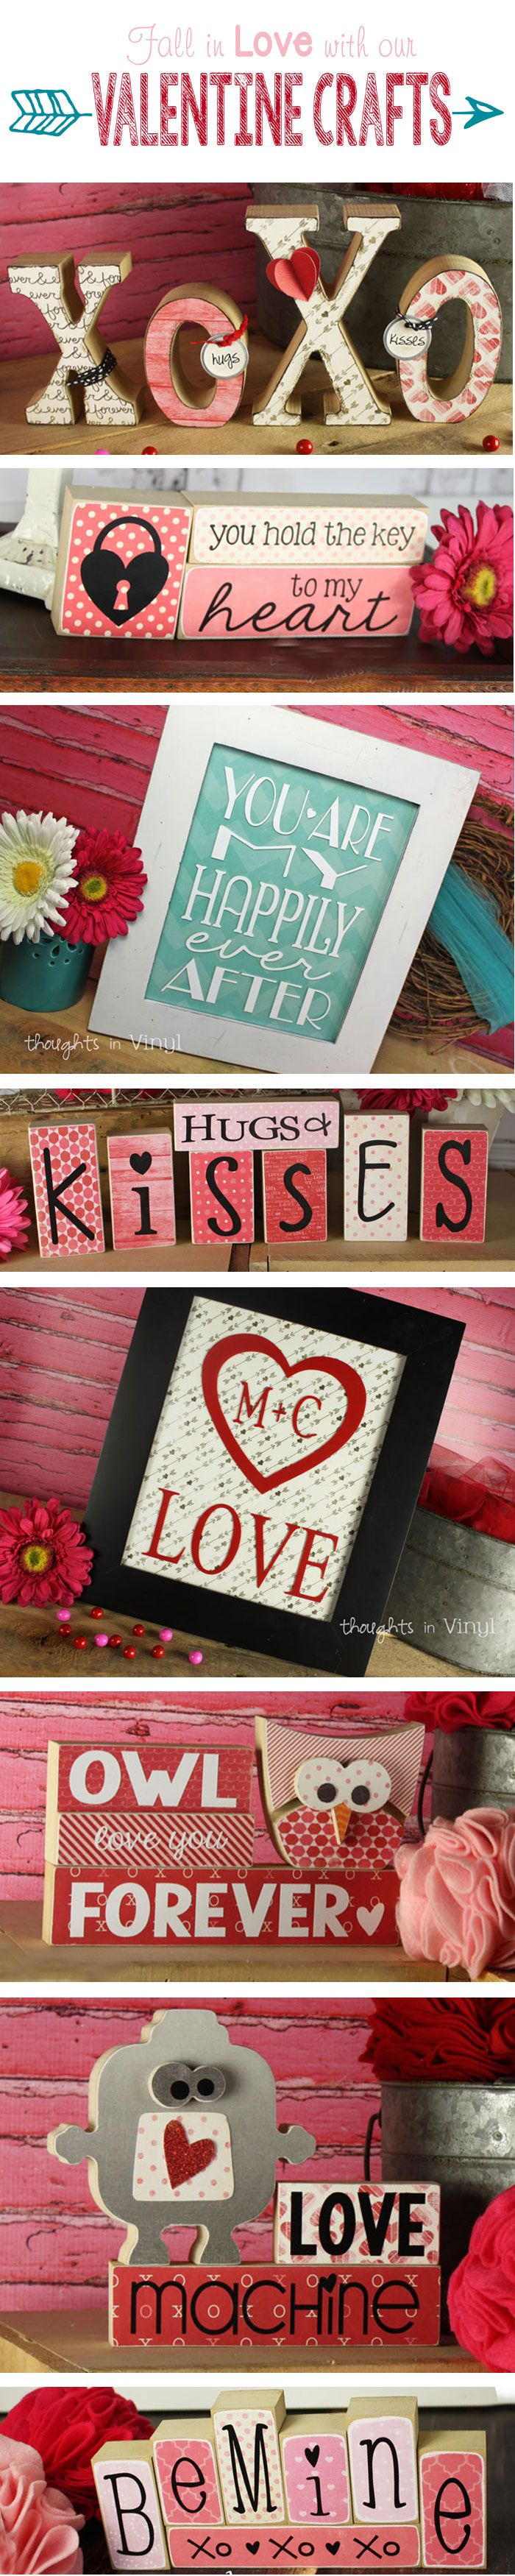 Lots Of Cute Valentineu0027s Day Wood Crafts! Wooden Letters And Shapes And Cute  Vinyl Lettering